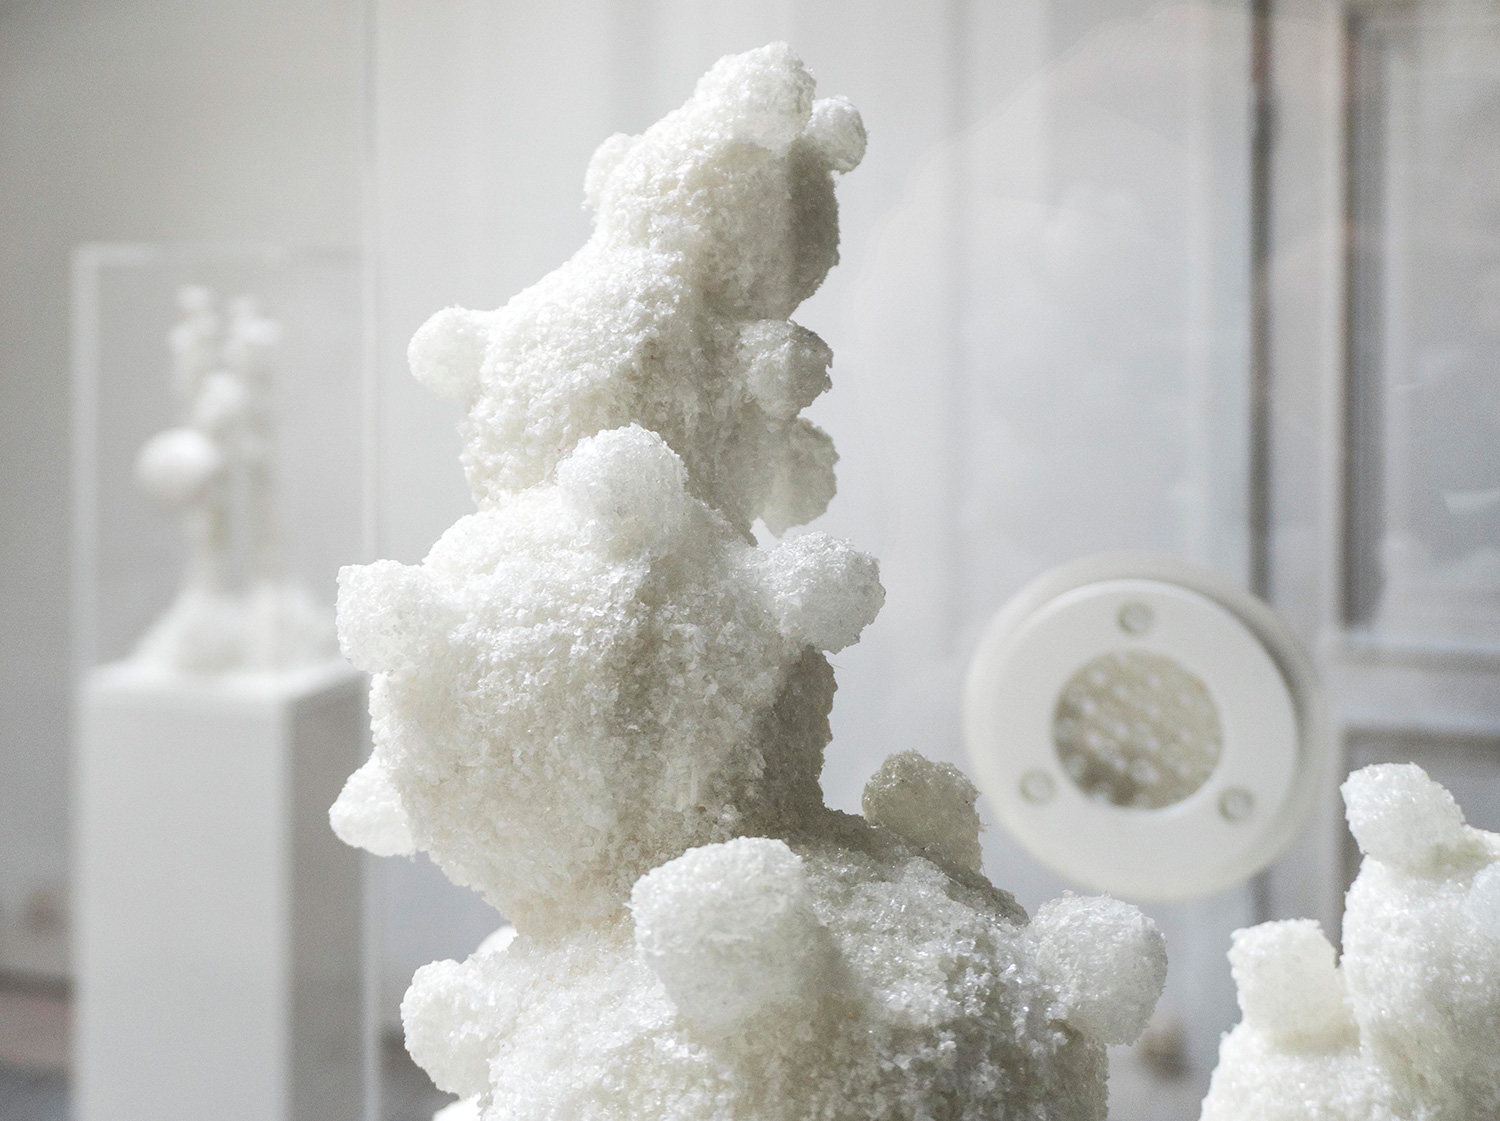 You are browsing images from the article: SALT FLOWERS IN ECCE HOMO